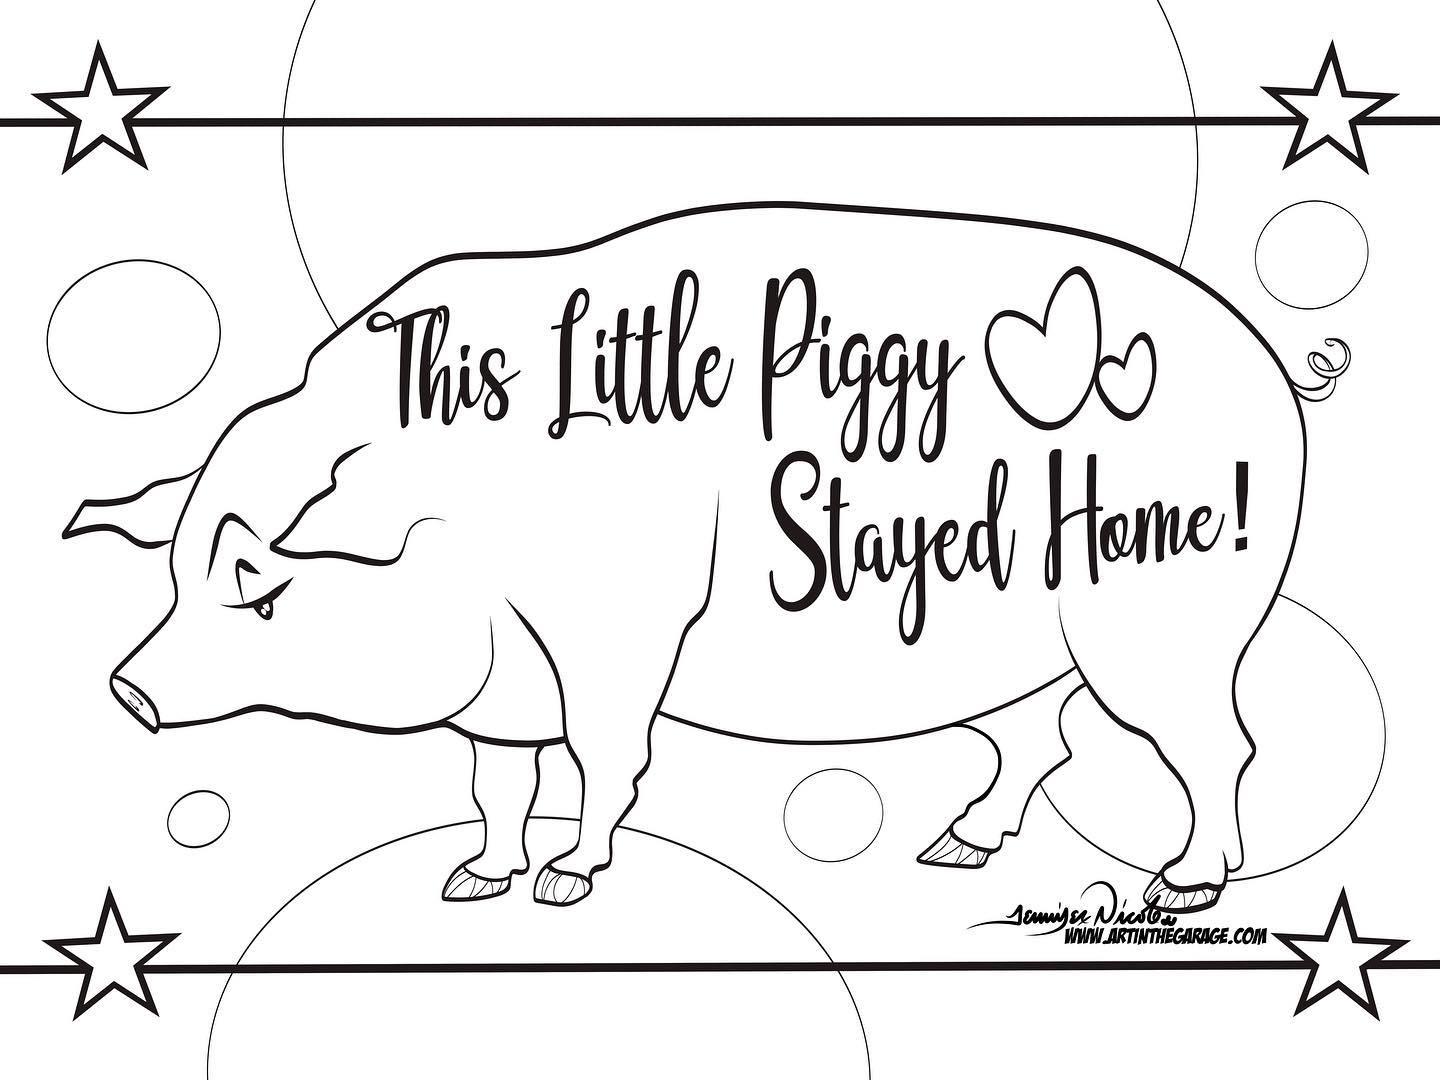 3-29-20 The Little Piggy Stayed Home